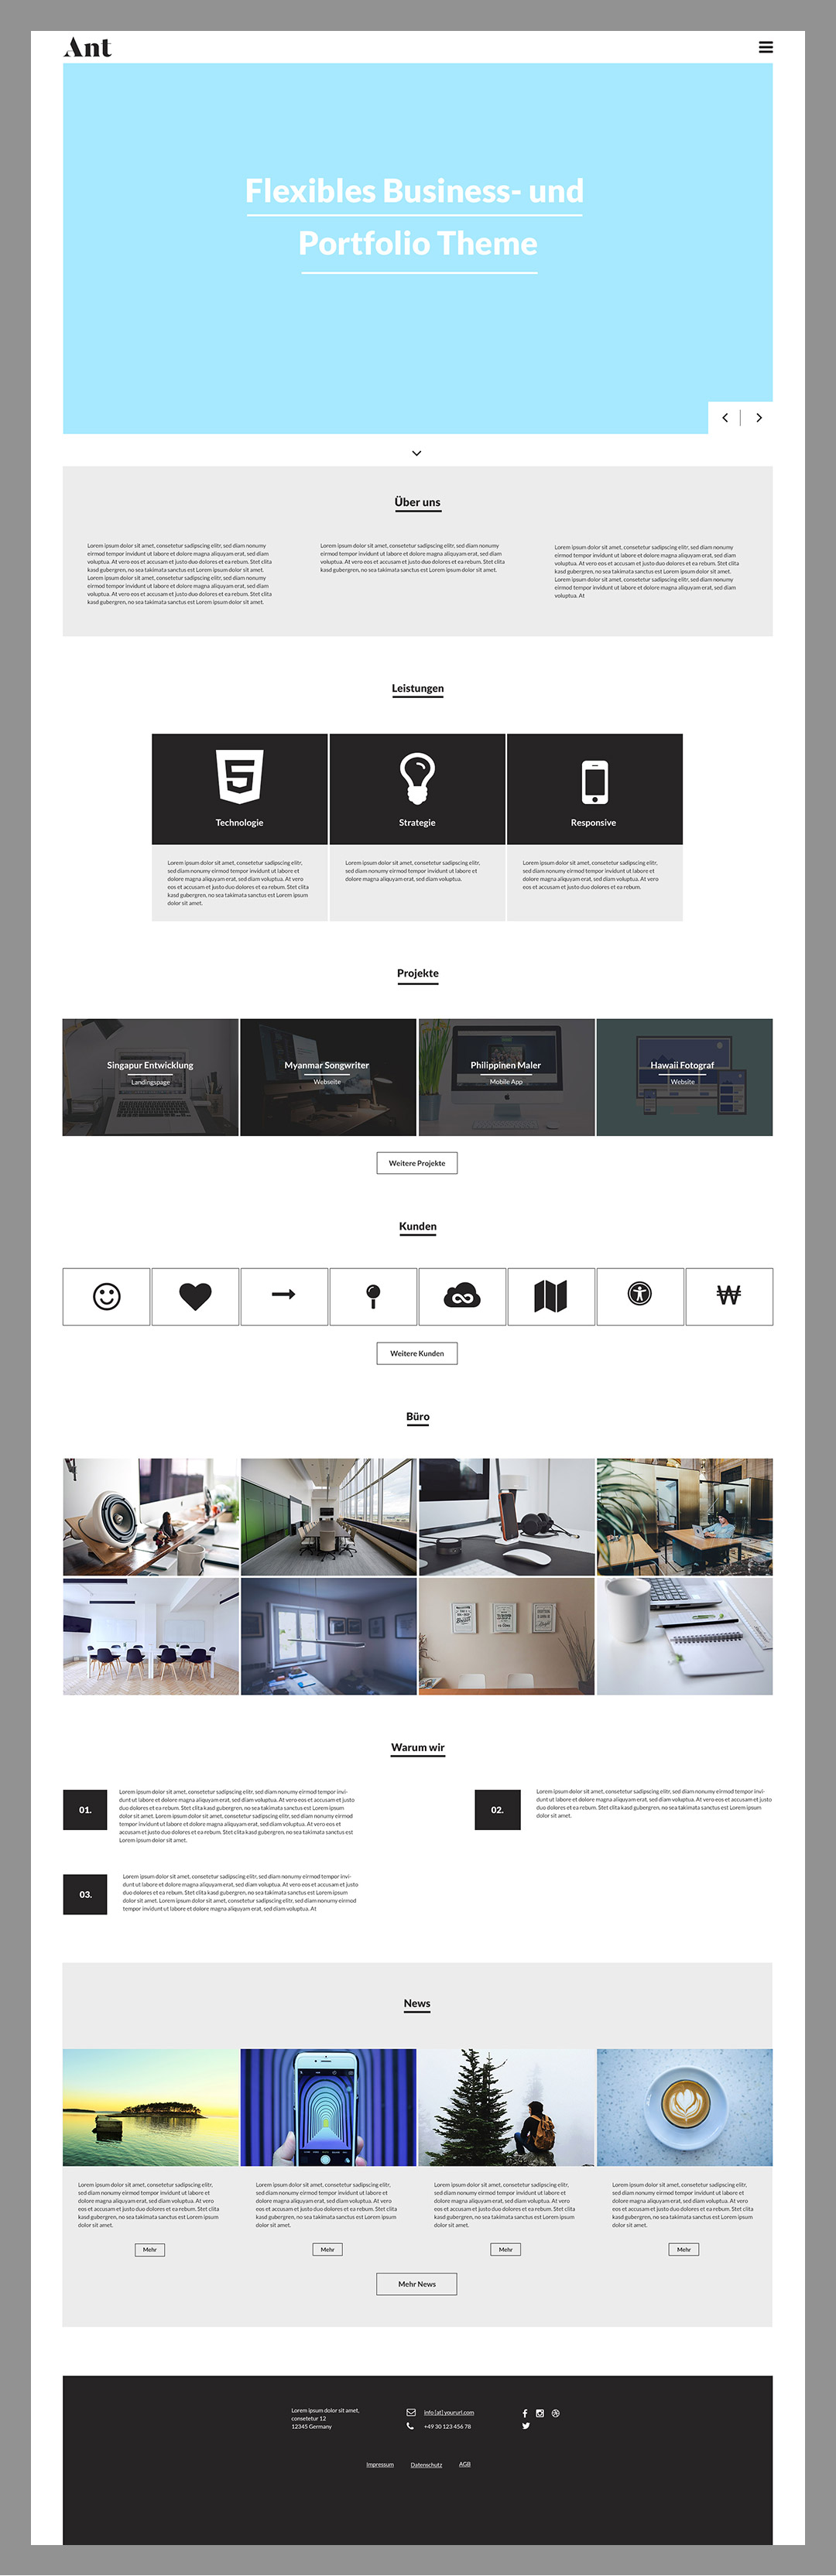 WordPress Theme von WordPress Bibel